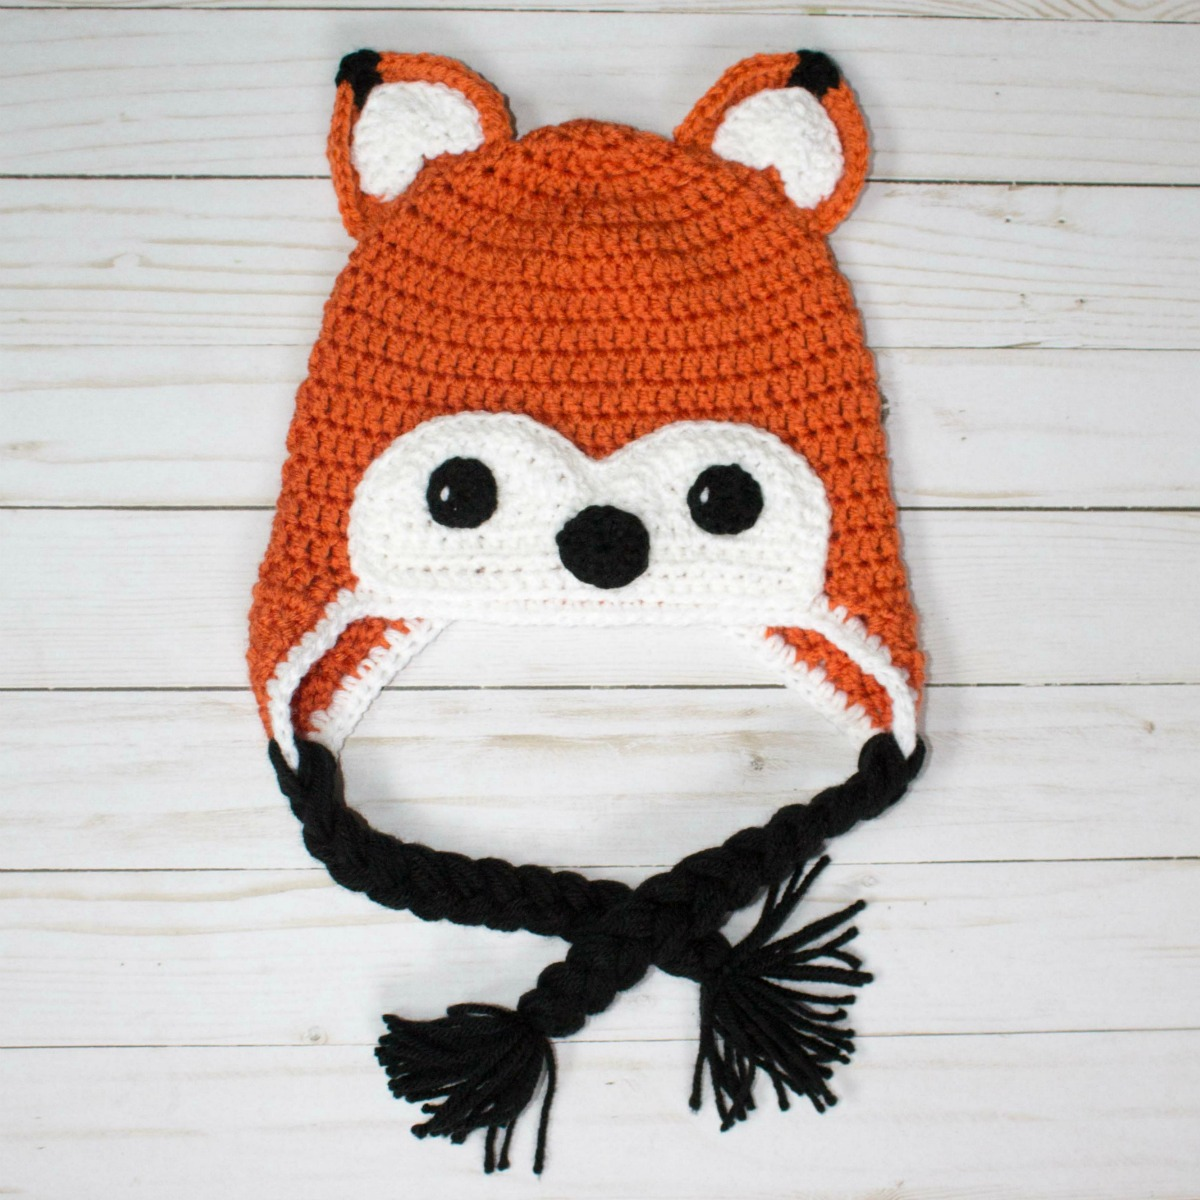 8f3402134d9c5 Free Crochet Hat Friendly Fox - thefriendlyredfox.com